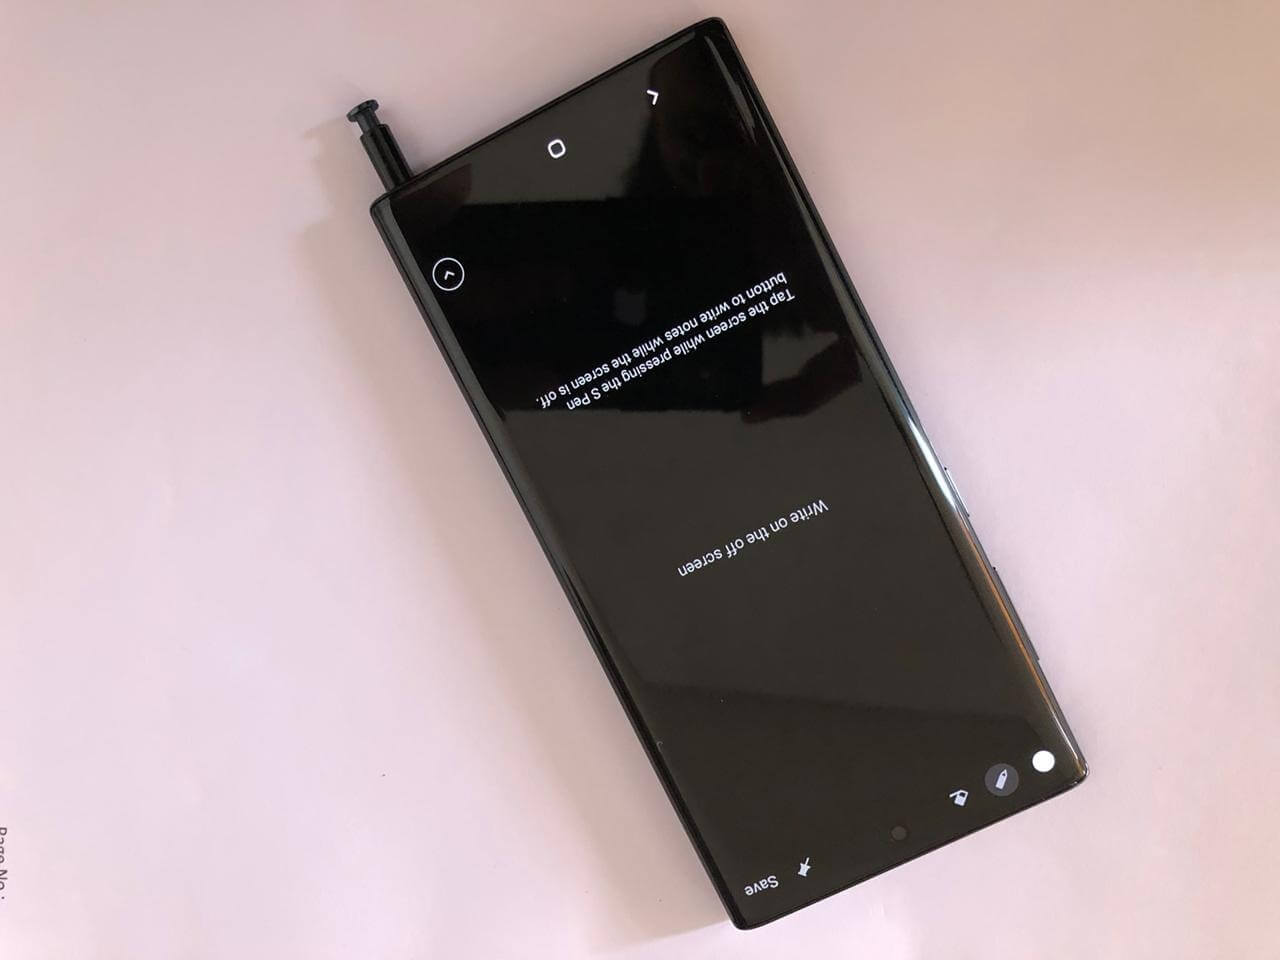 Note Buddy App not working on Note 10